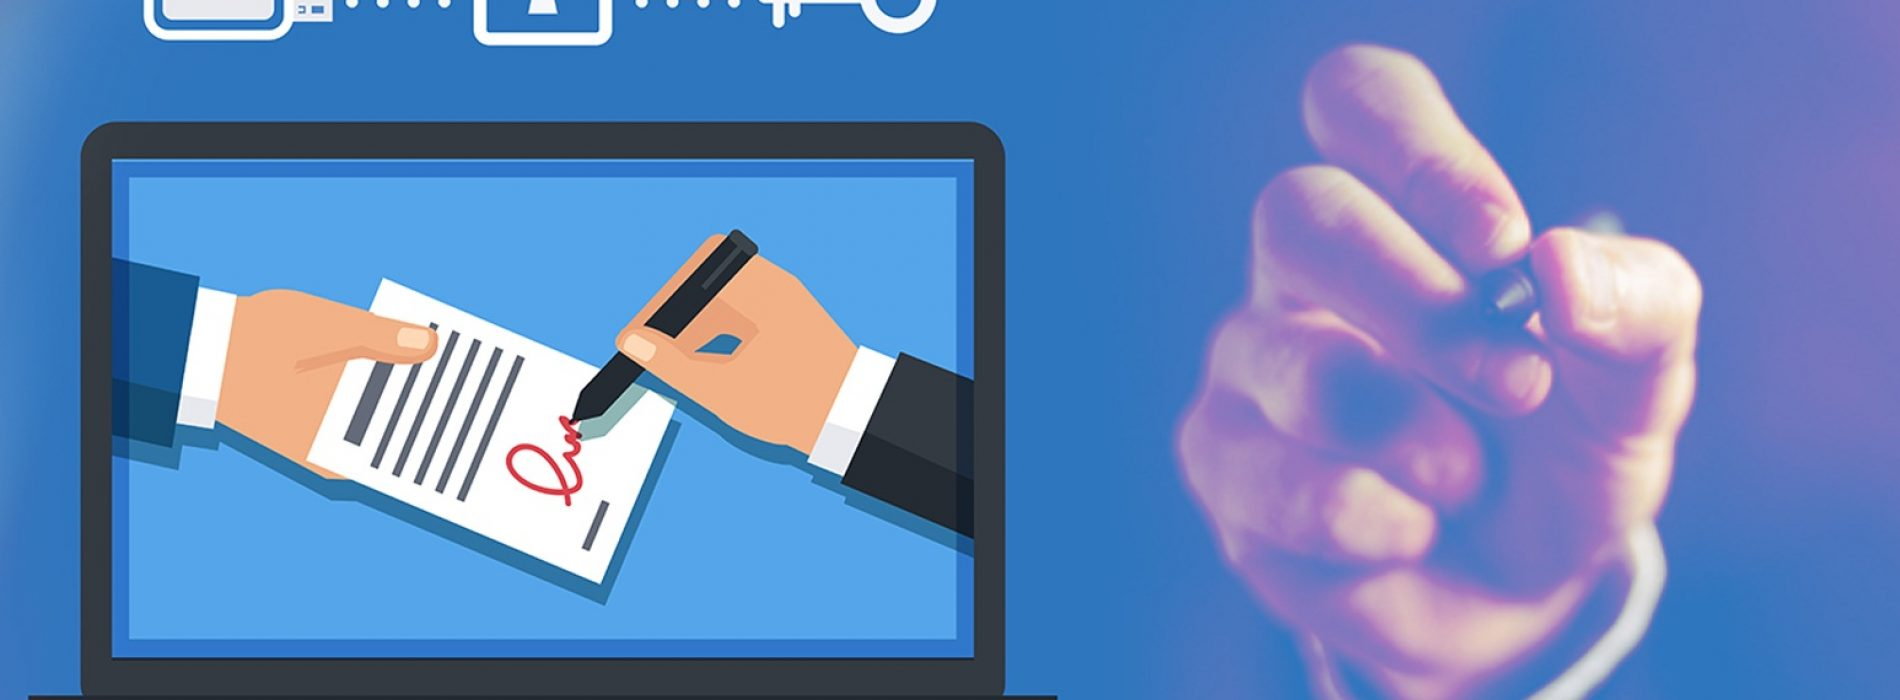 How to apply for digital signatures with no hassle?